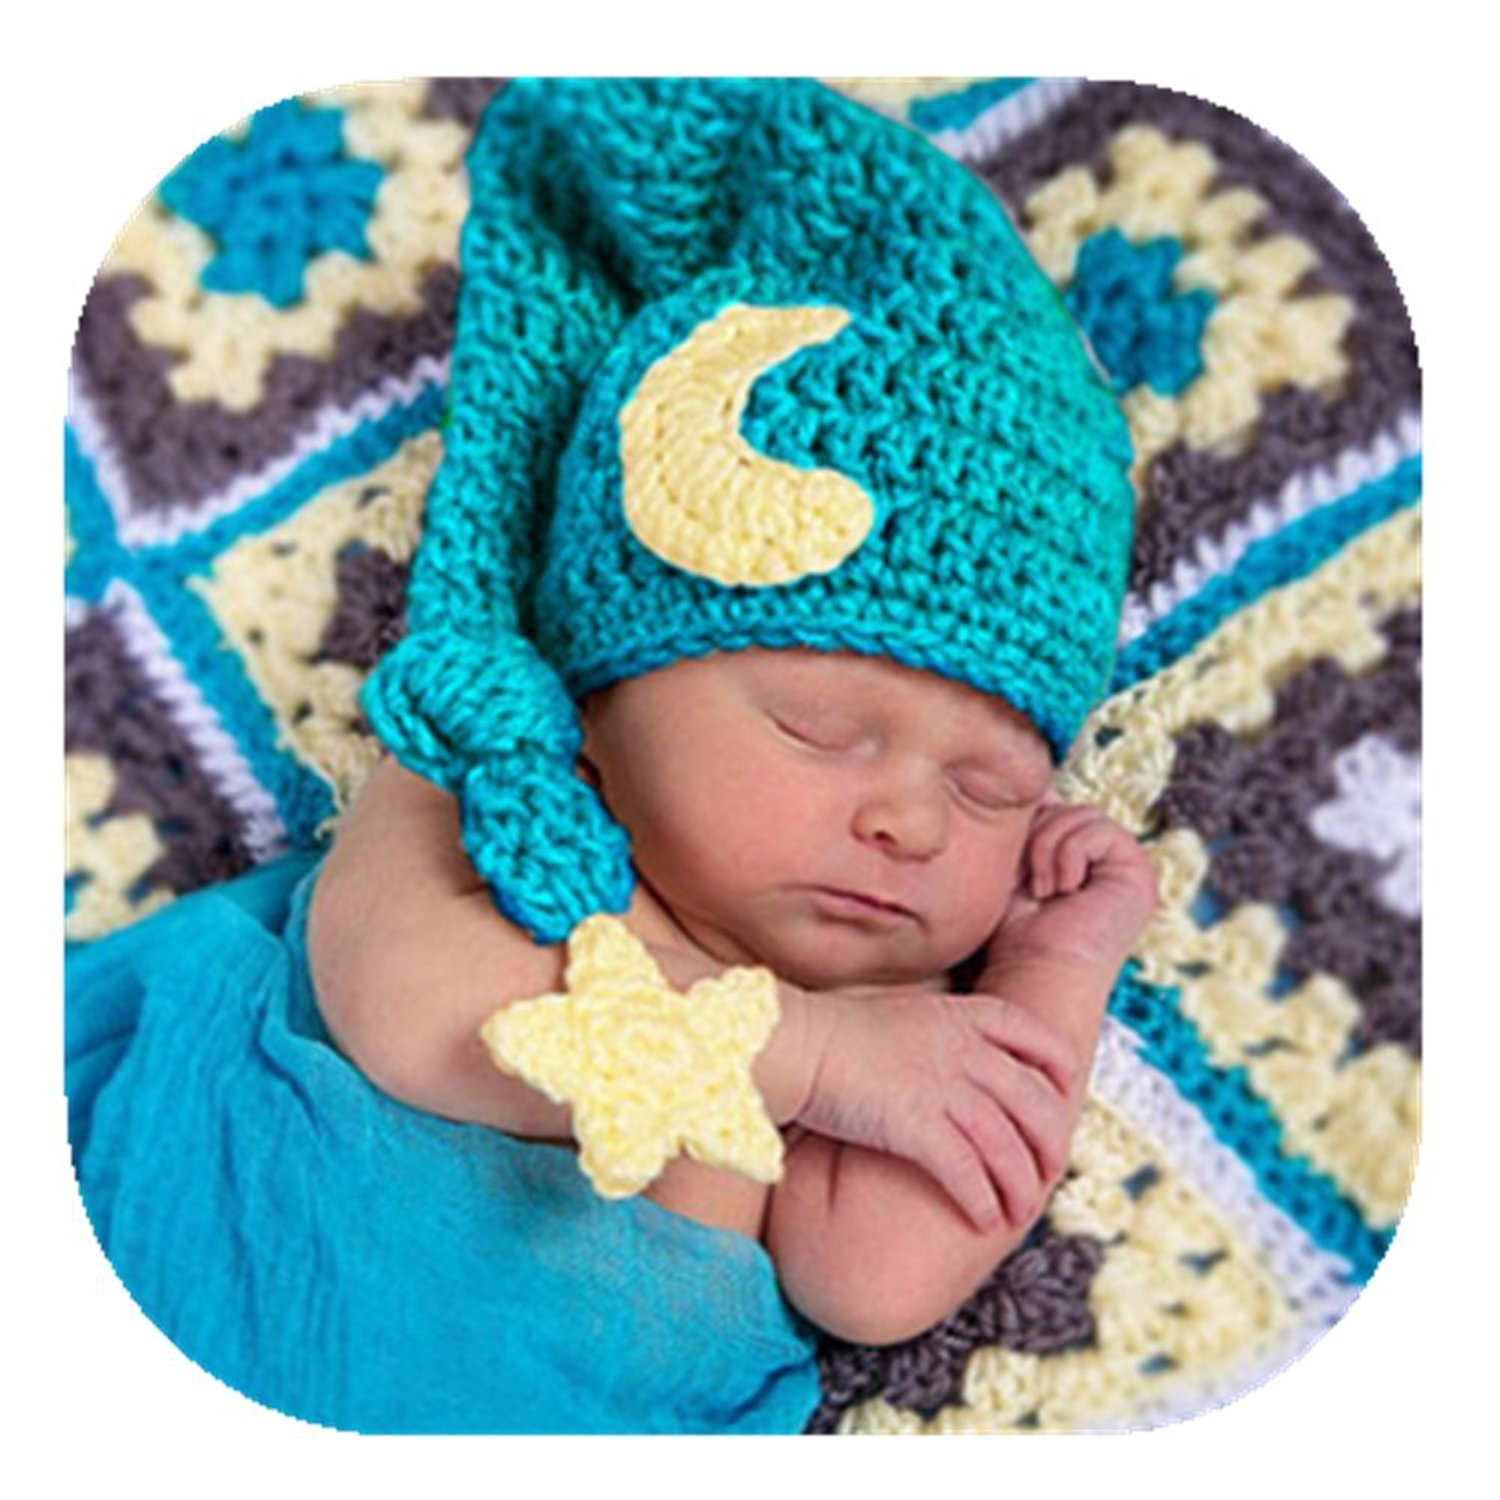 054ba98aa3a4 Get Quotations · Newborn Baby Photography Props Outfits Crochet Knit  Fashion Cute Moon Star Hat for Boy Girl Photography